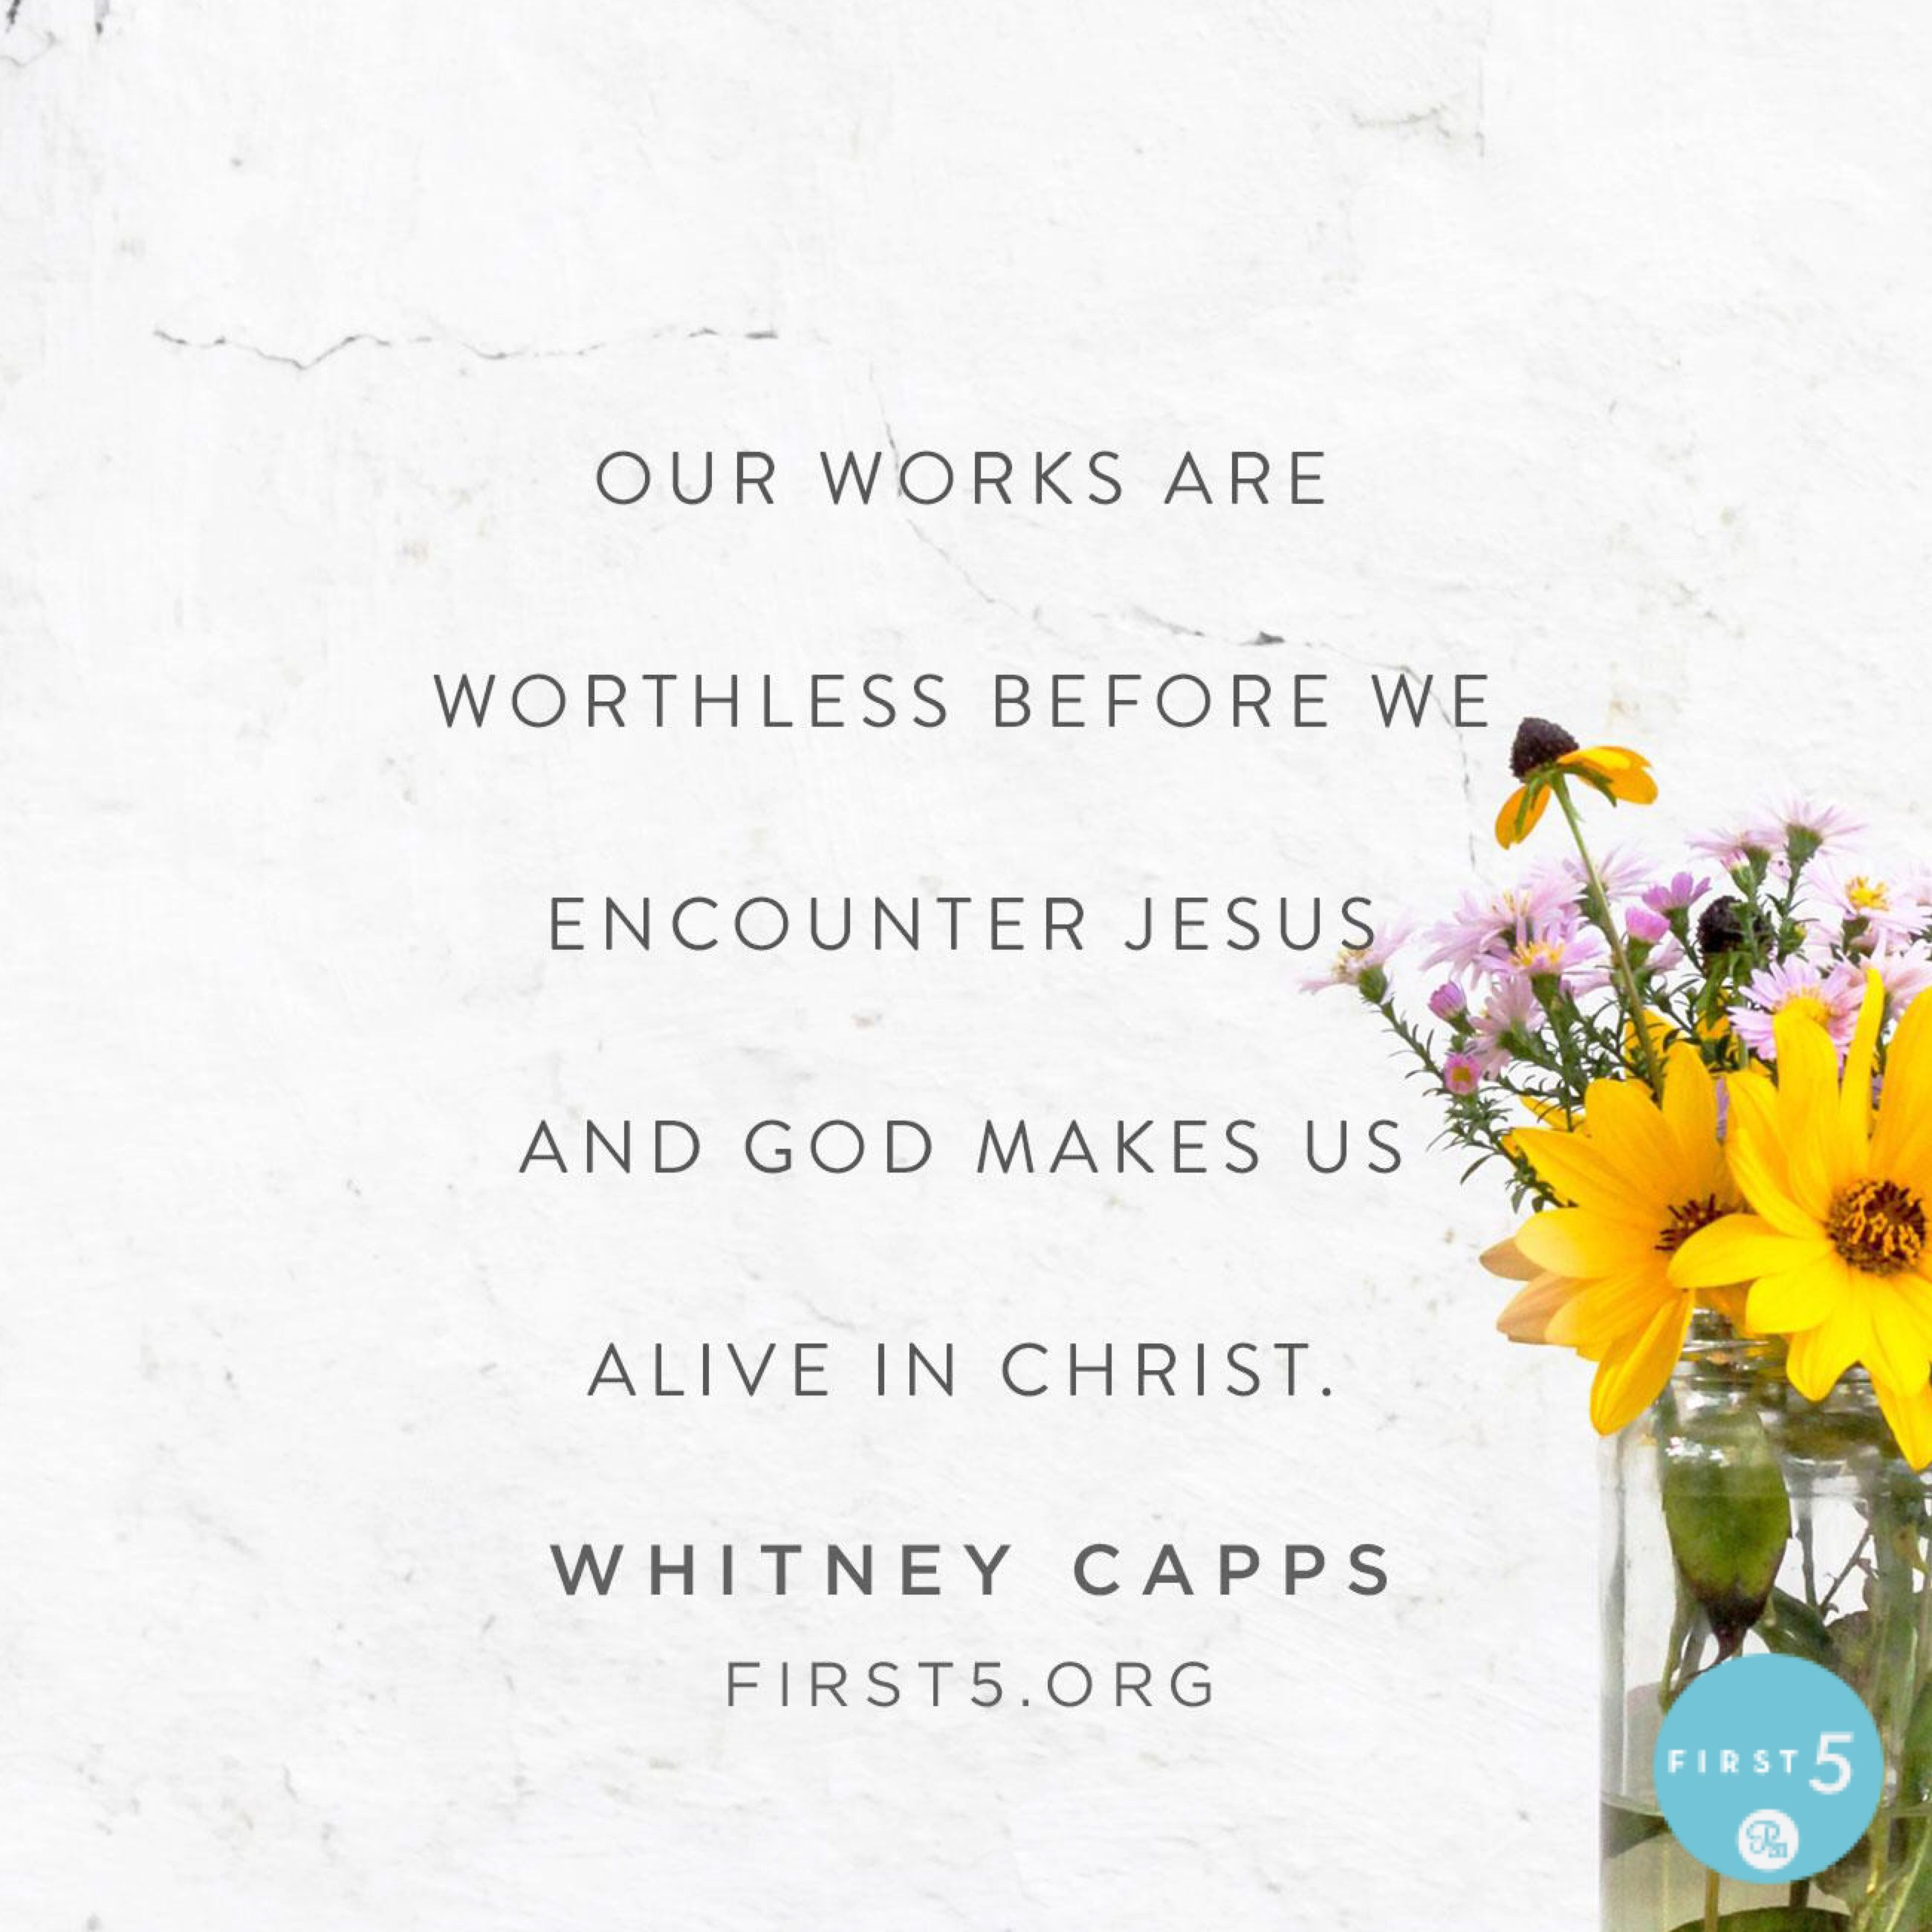 First5 @First5App Prayer: Heavenly Father, I willingly give